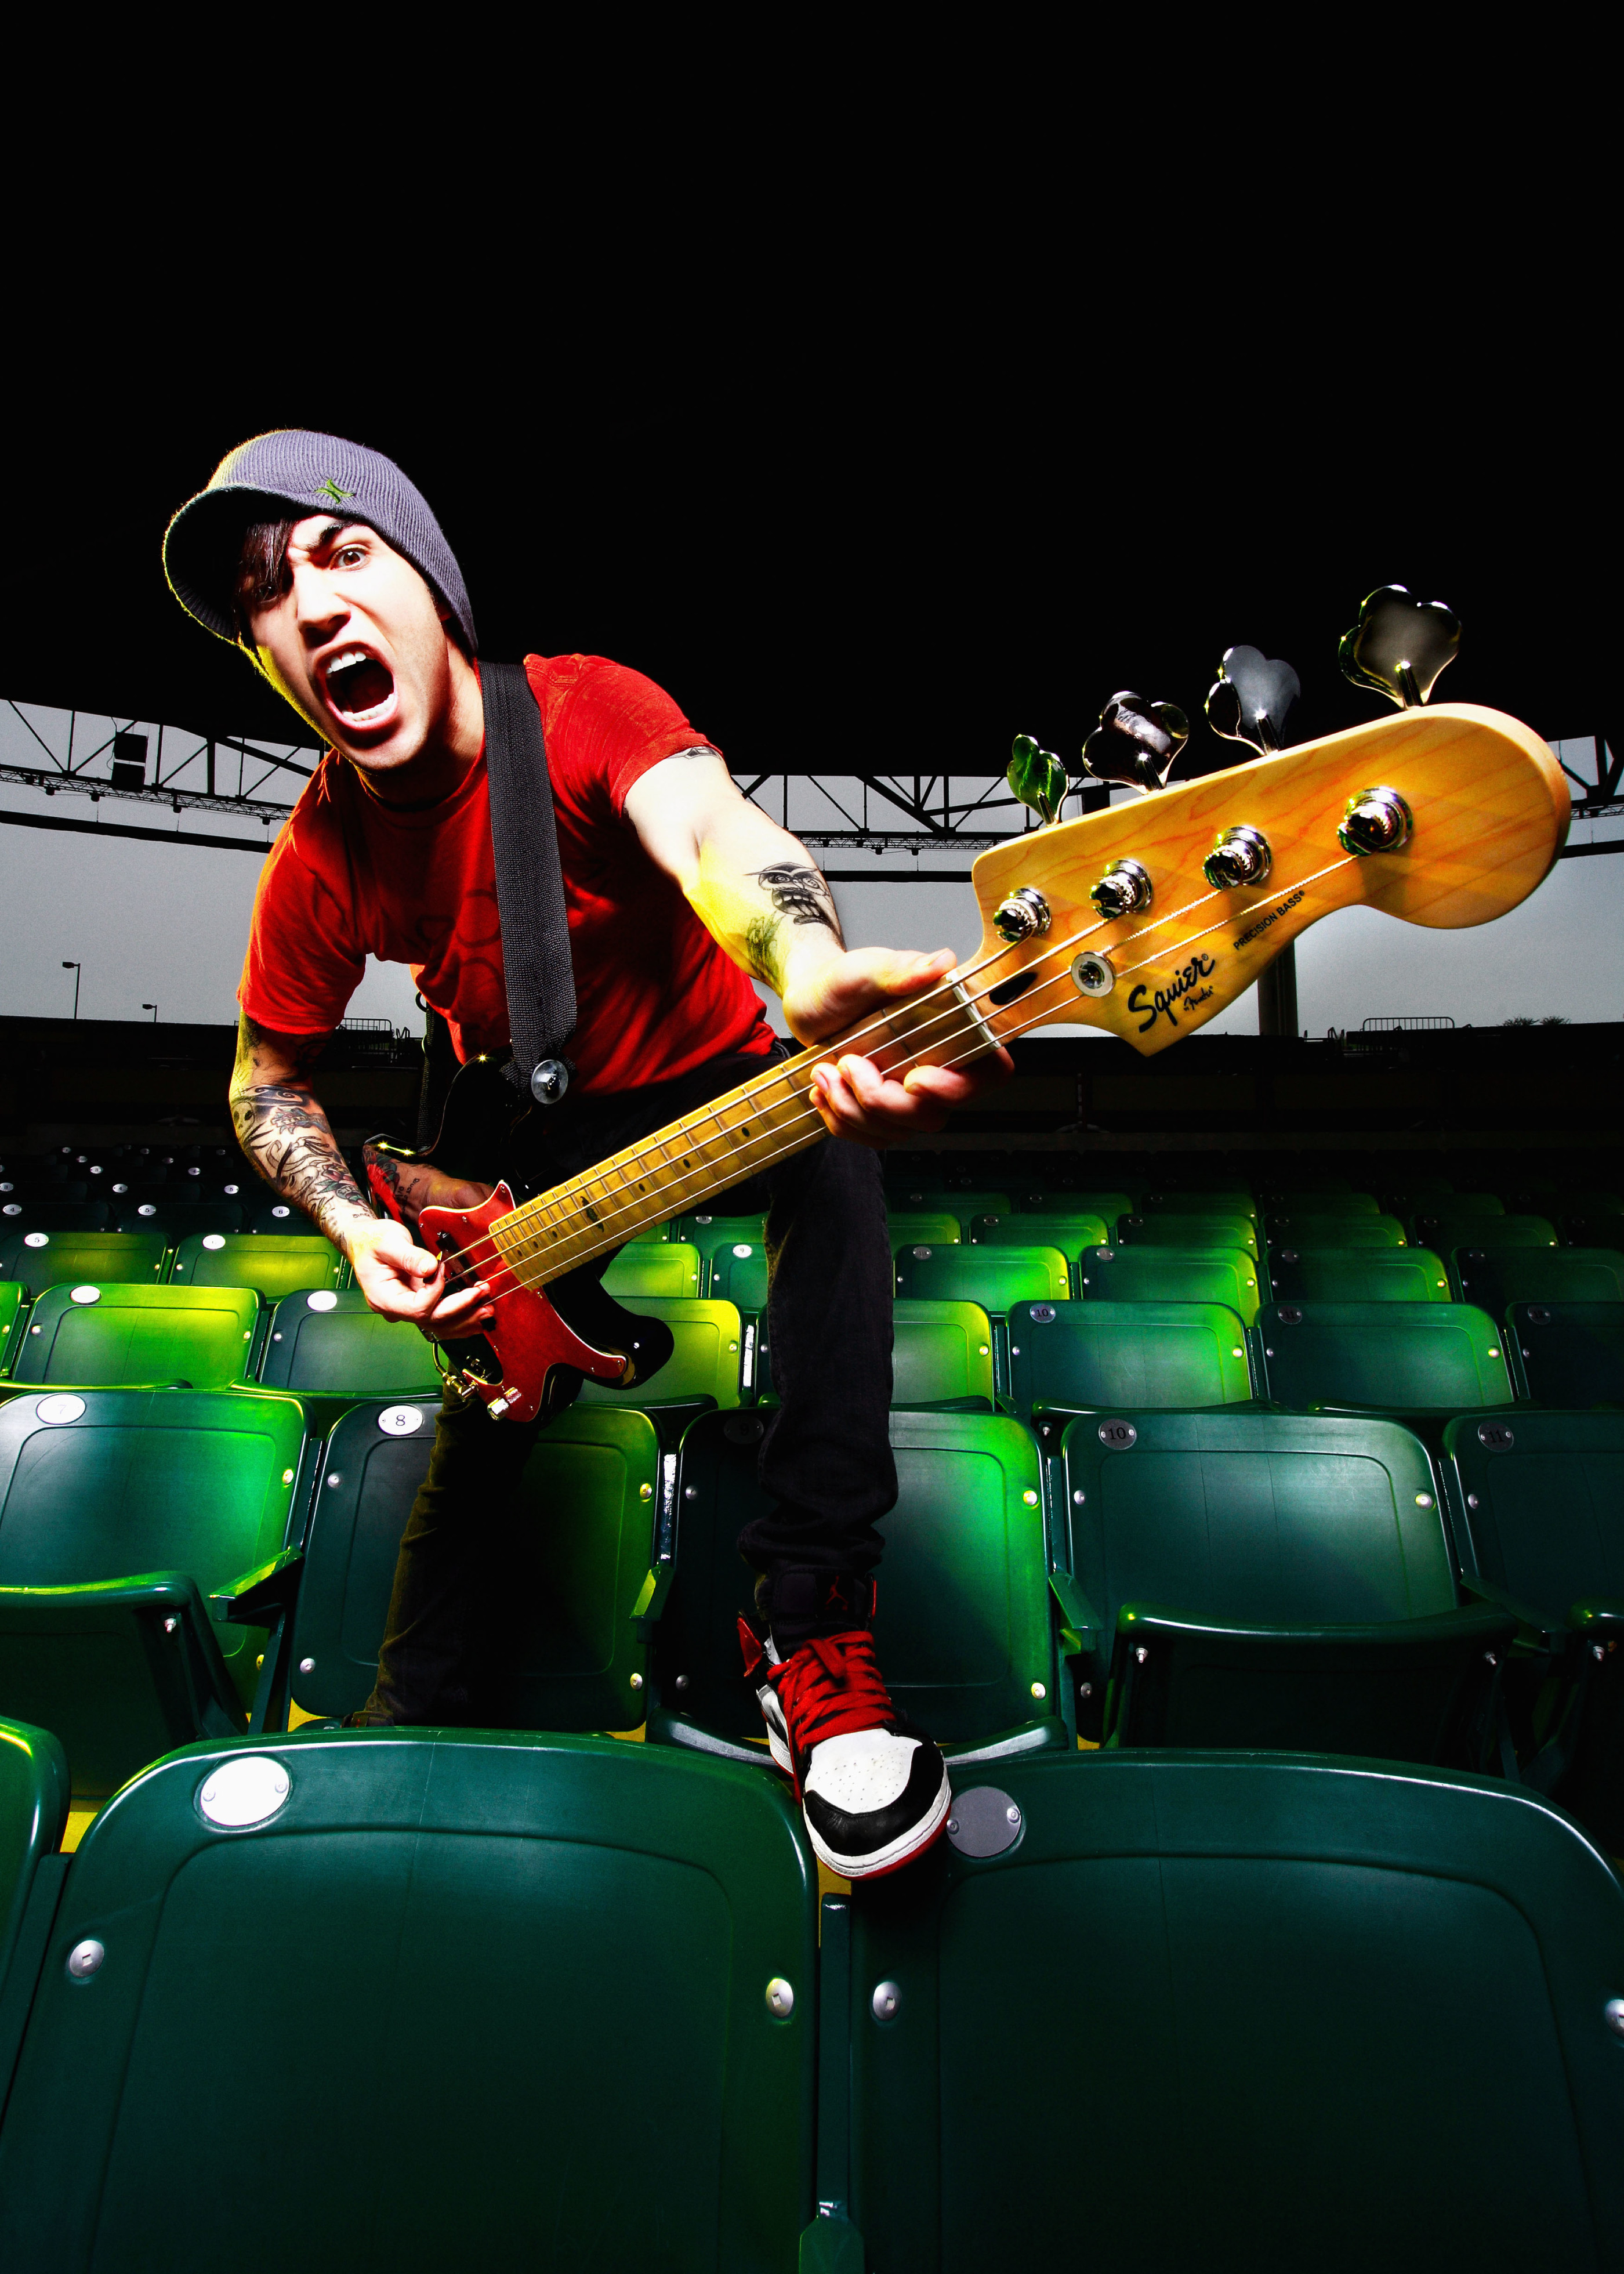 Pete Wentz Squier Basses 0010 © Ash Newell Photography